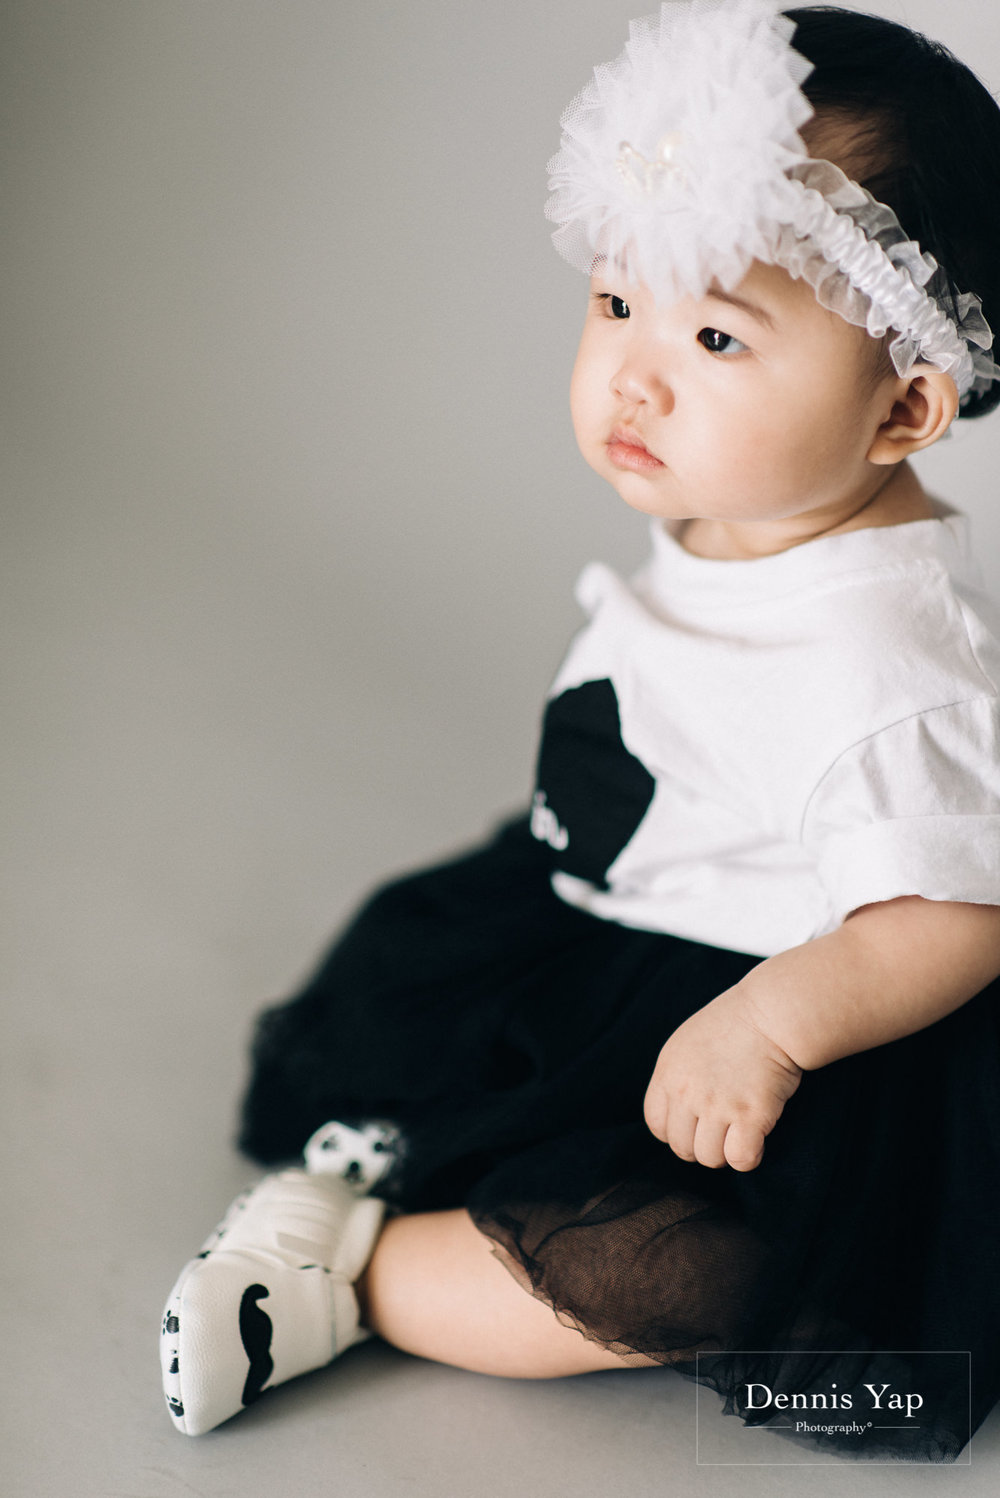 isaac evon family baby portrait funny style dennis yap photography-2.jpg